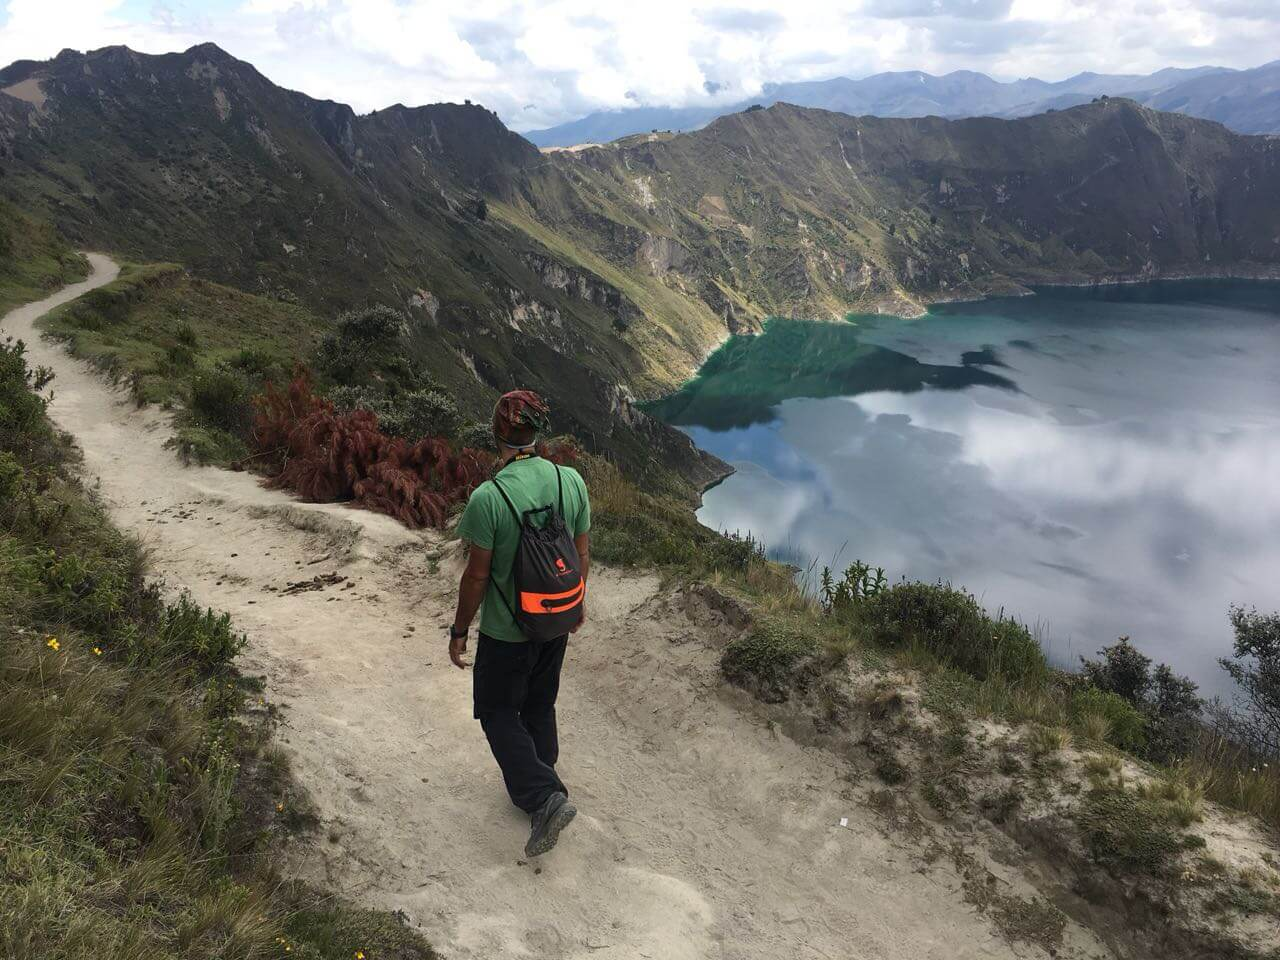 How to go from Quito to Quilotoa?